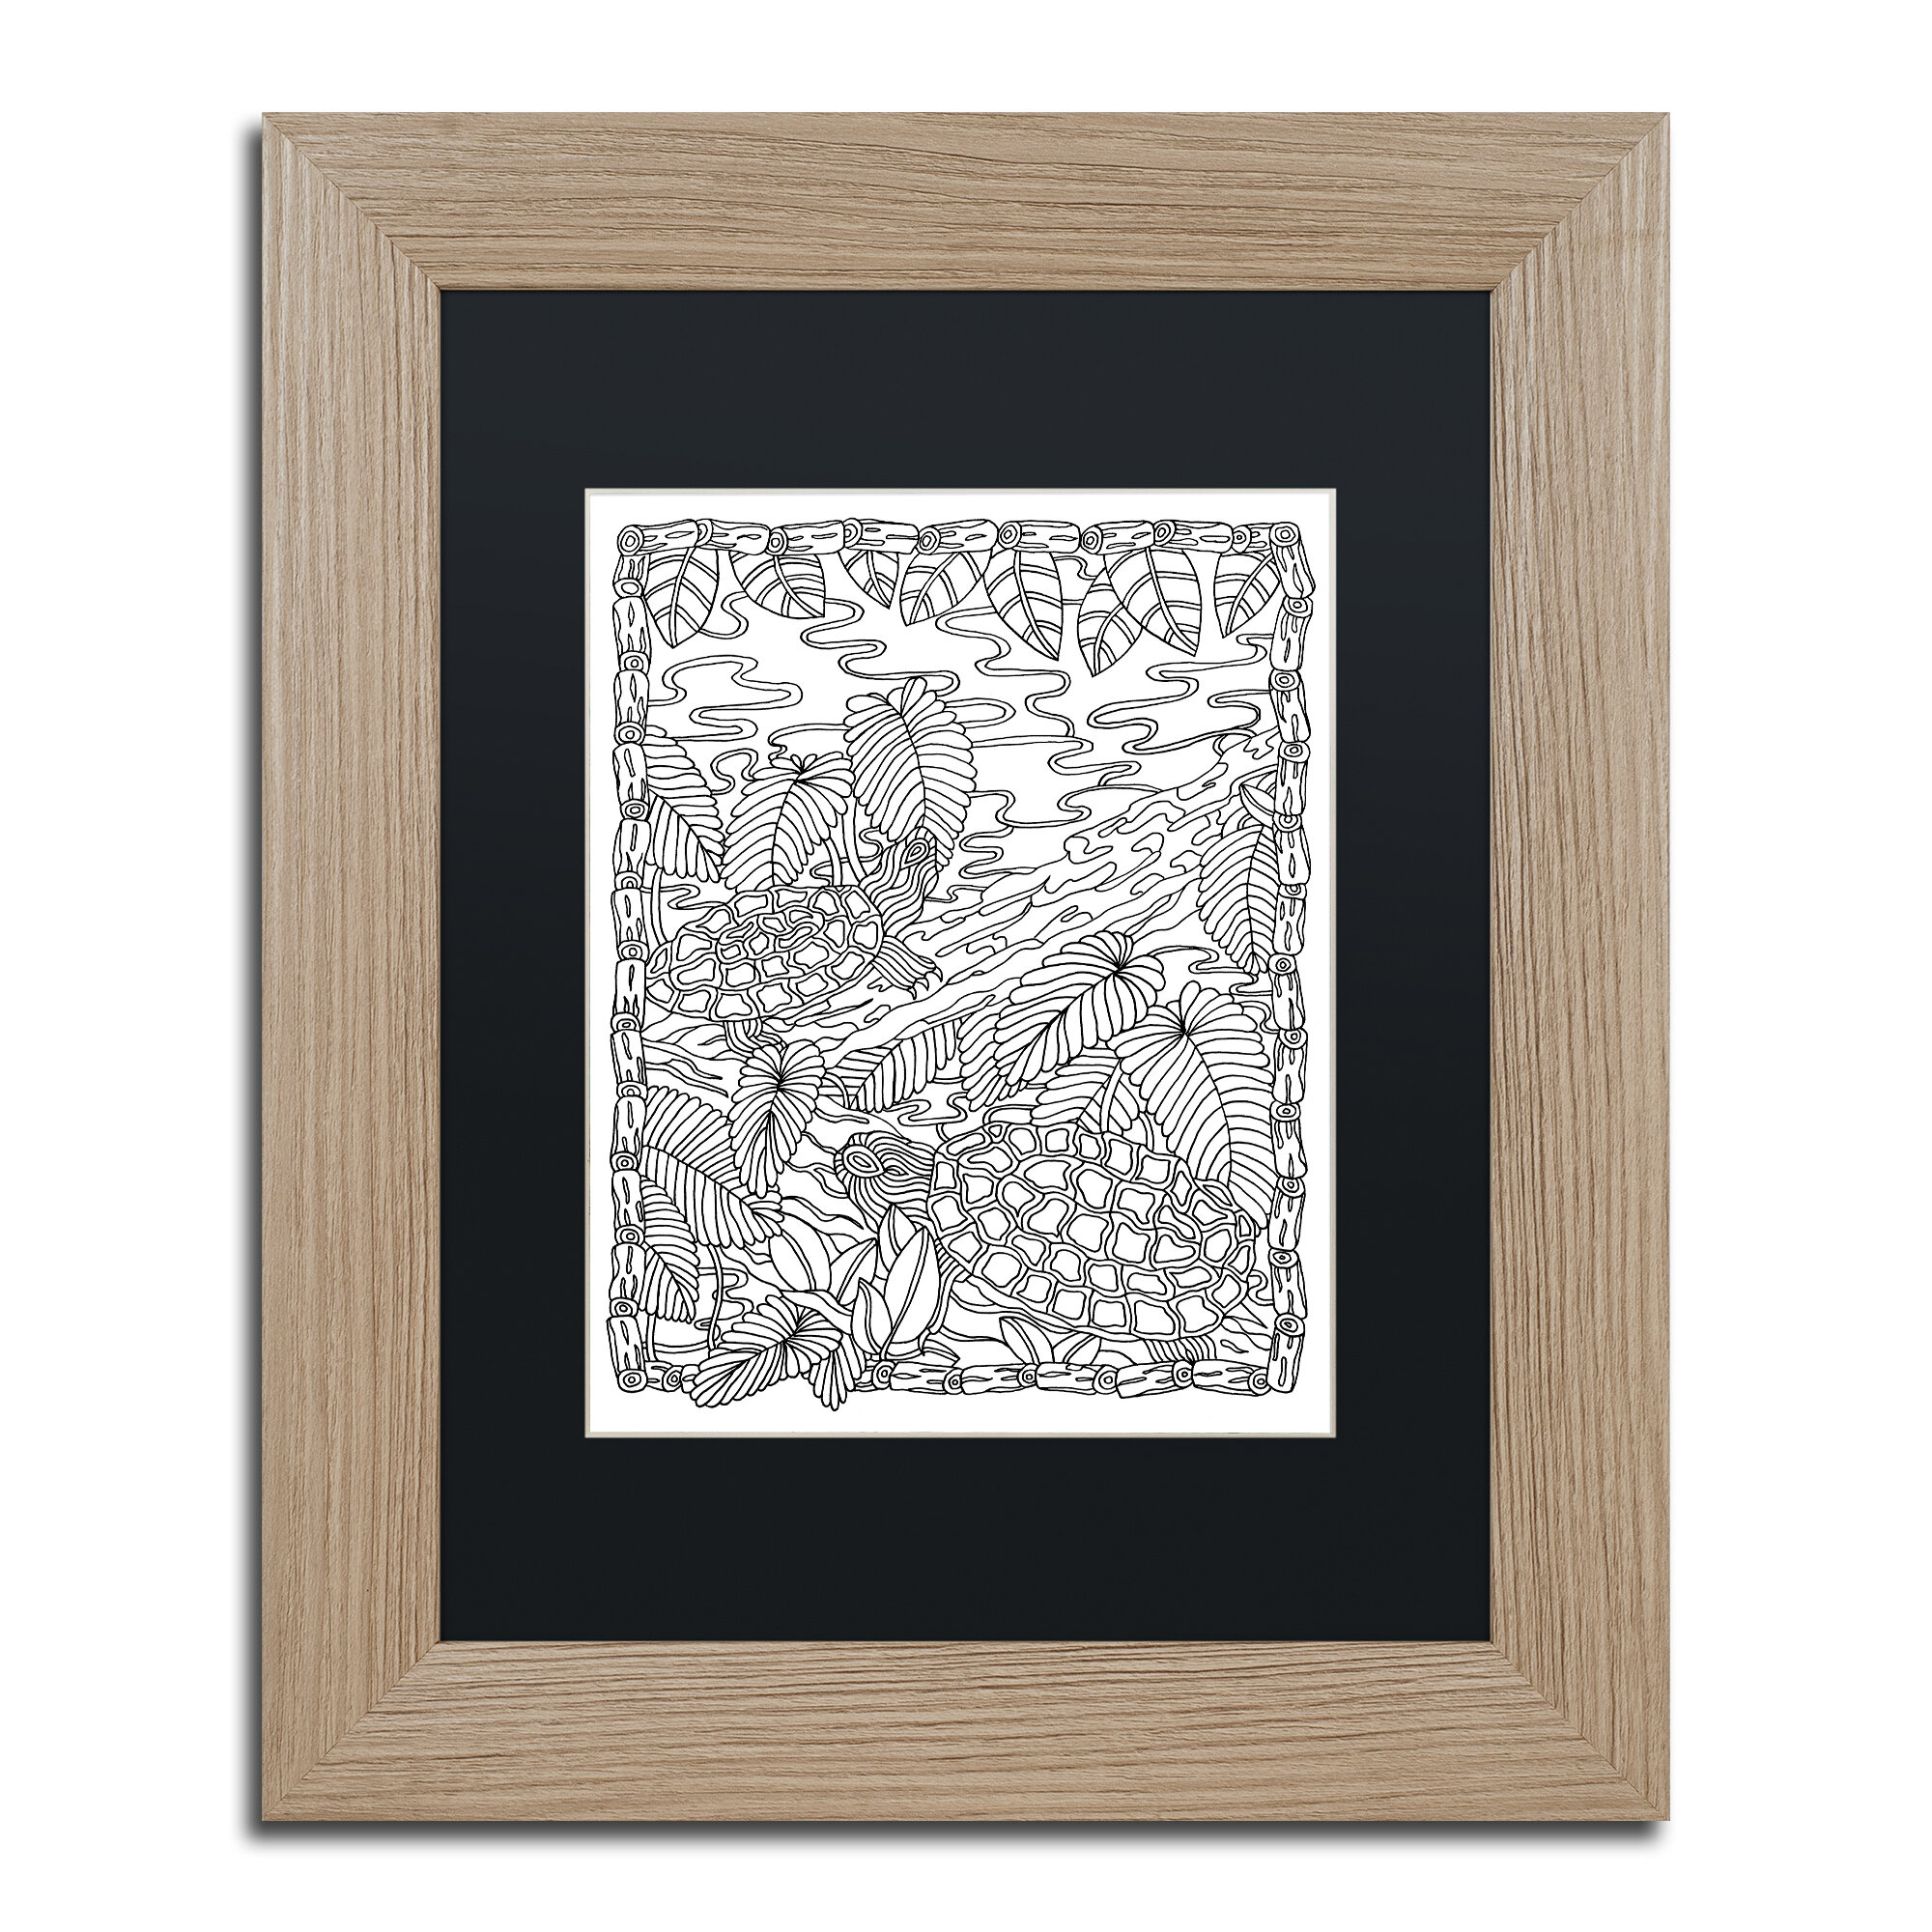 Quot Rock Garden Quot By Kathy G Ahrens Framed Graphic Art